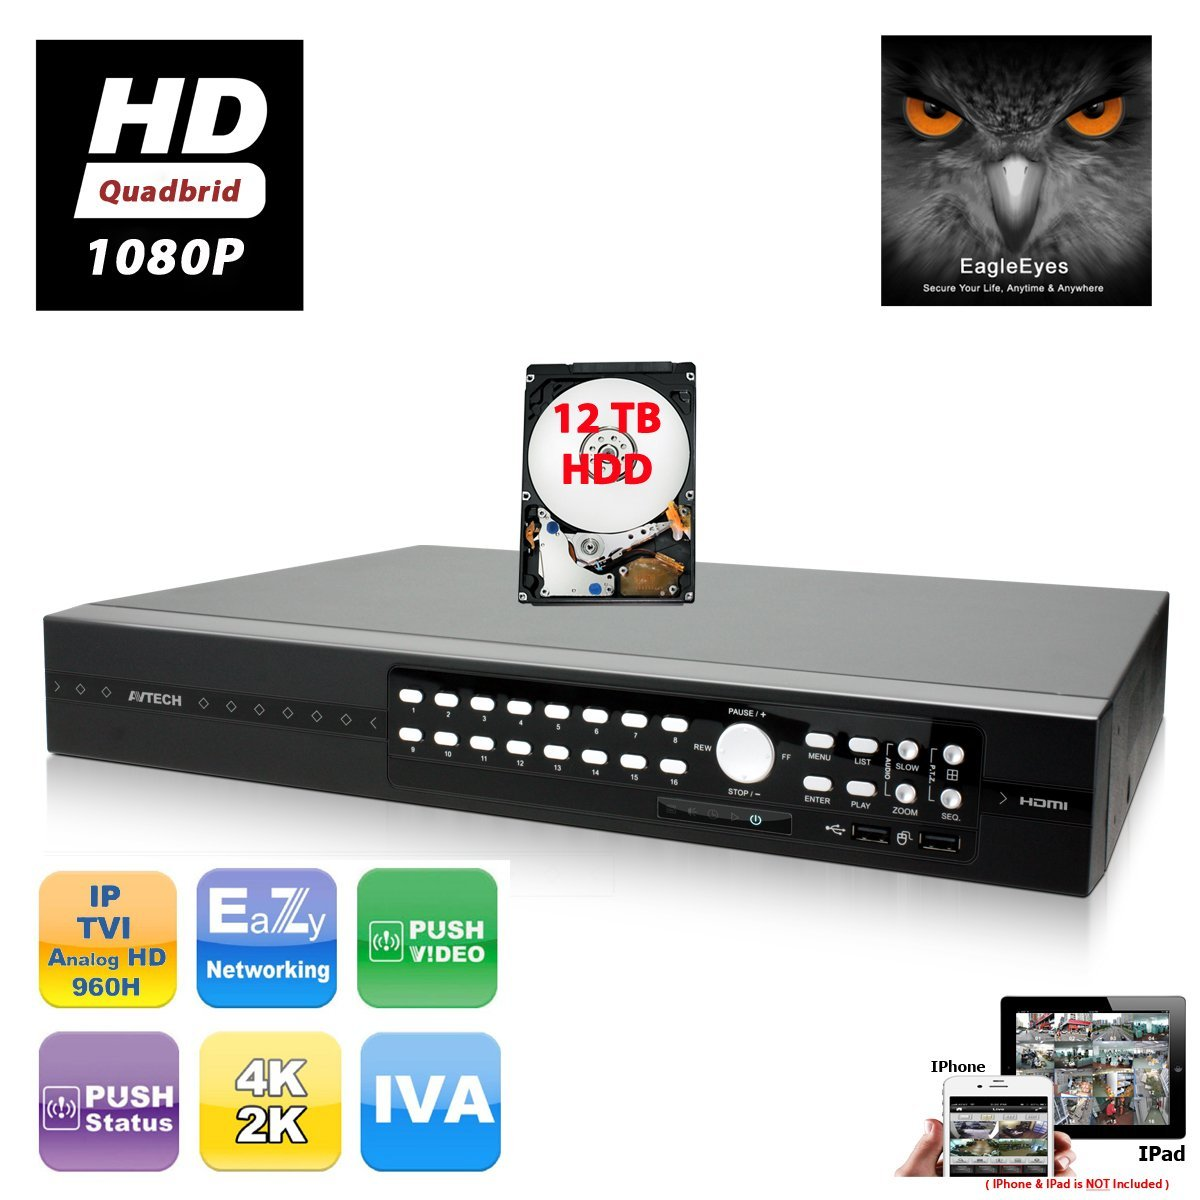 EVERTECH AVTECH H.264 16 Channel HD 1080P Quadbrid TVI + AHD + IP + Analog EagleEyes Push Video Security Digital Video Recorder Cloud Support DVR for CCTV Mobile Phone Access with 12TB